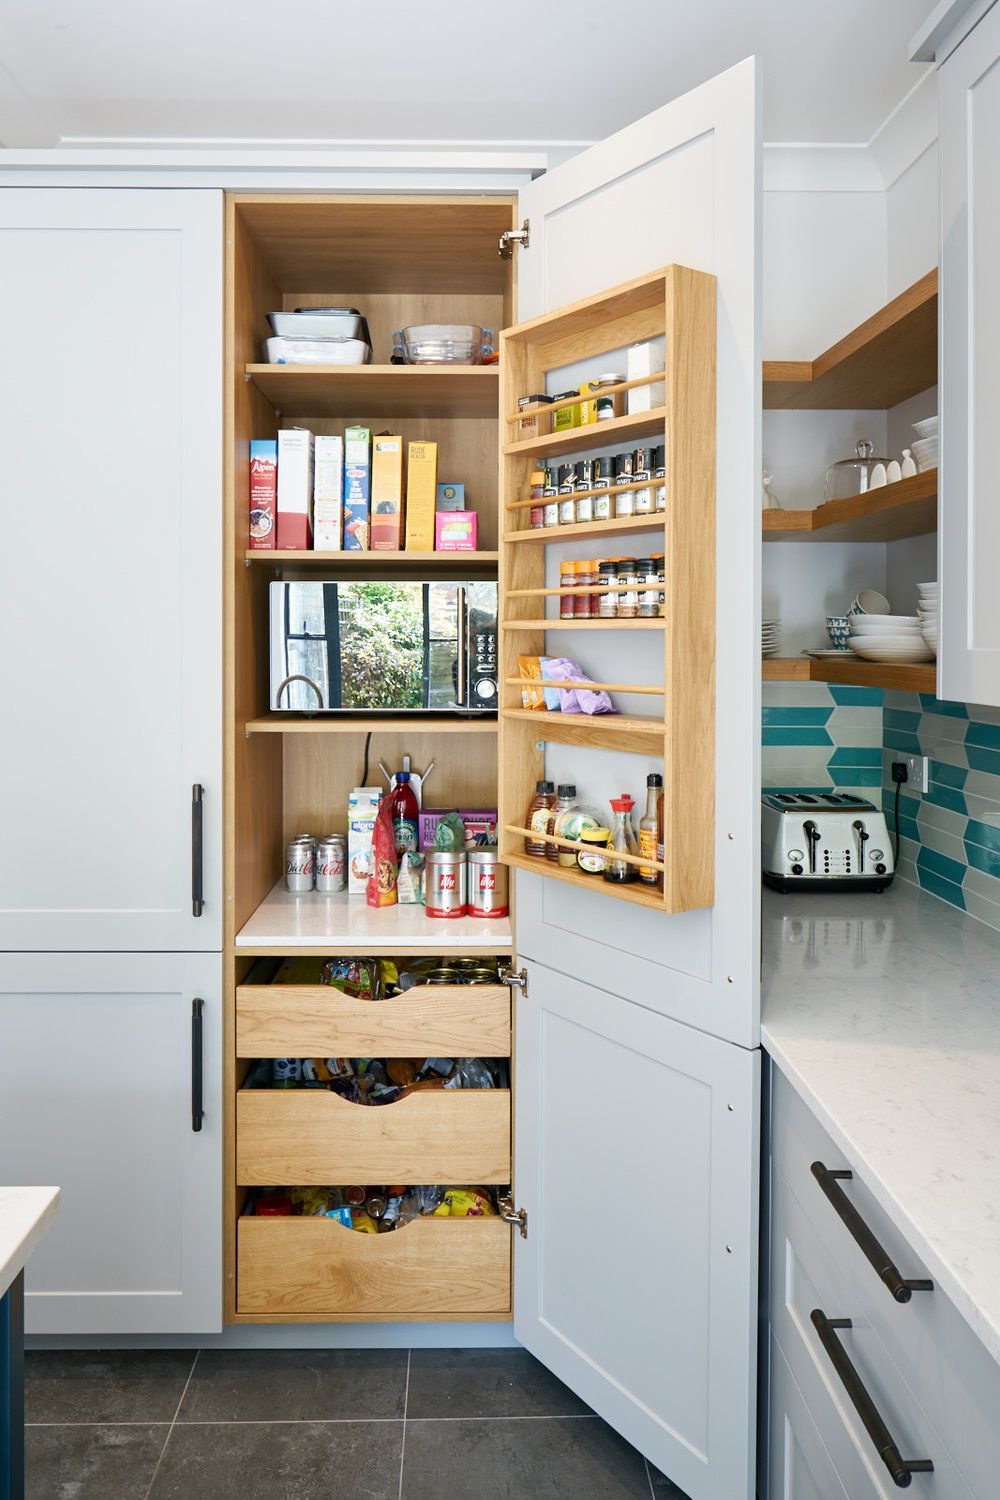 Shaker Larder In Purbeck Stone With Oak Spice Rack And Internal Drawers Modern Kitchen Cabinets Kitchen Design Small Kitchen Cabinets Decor